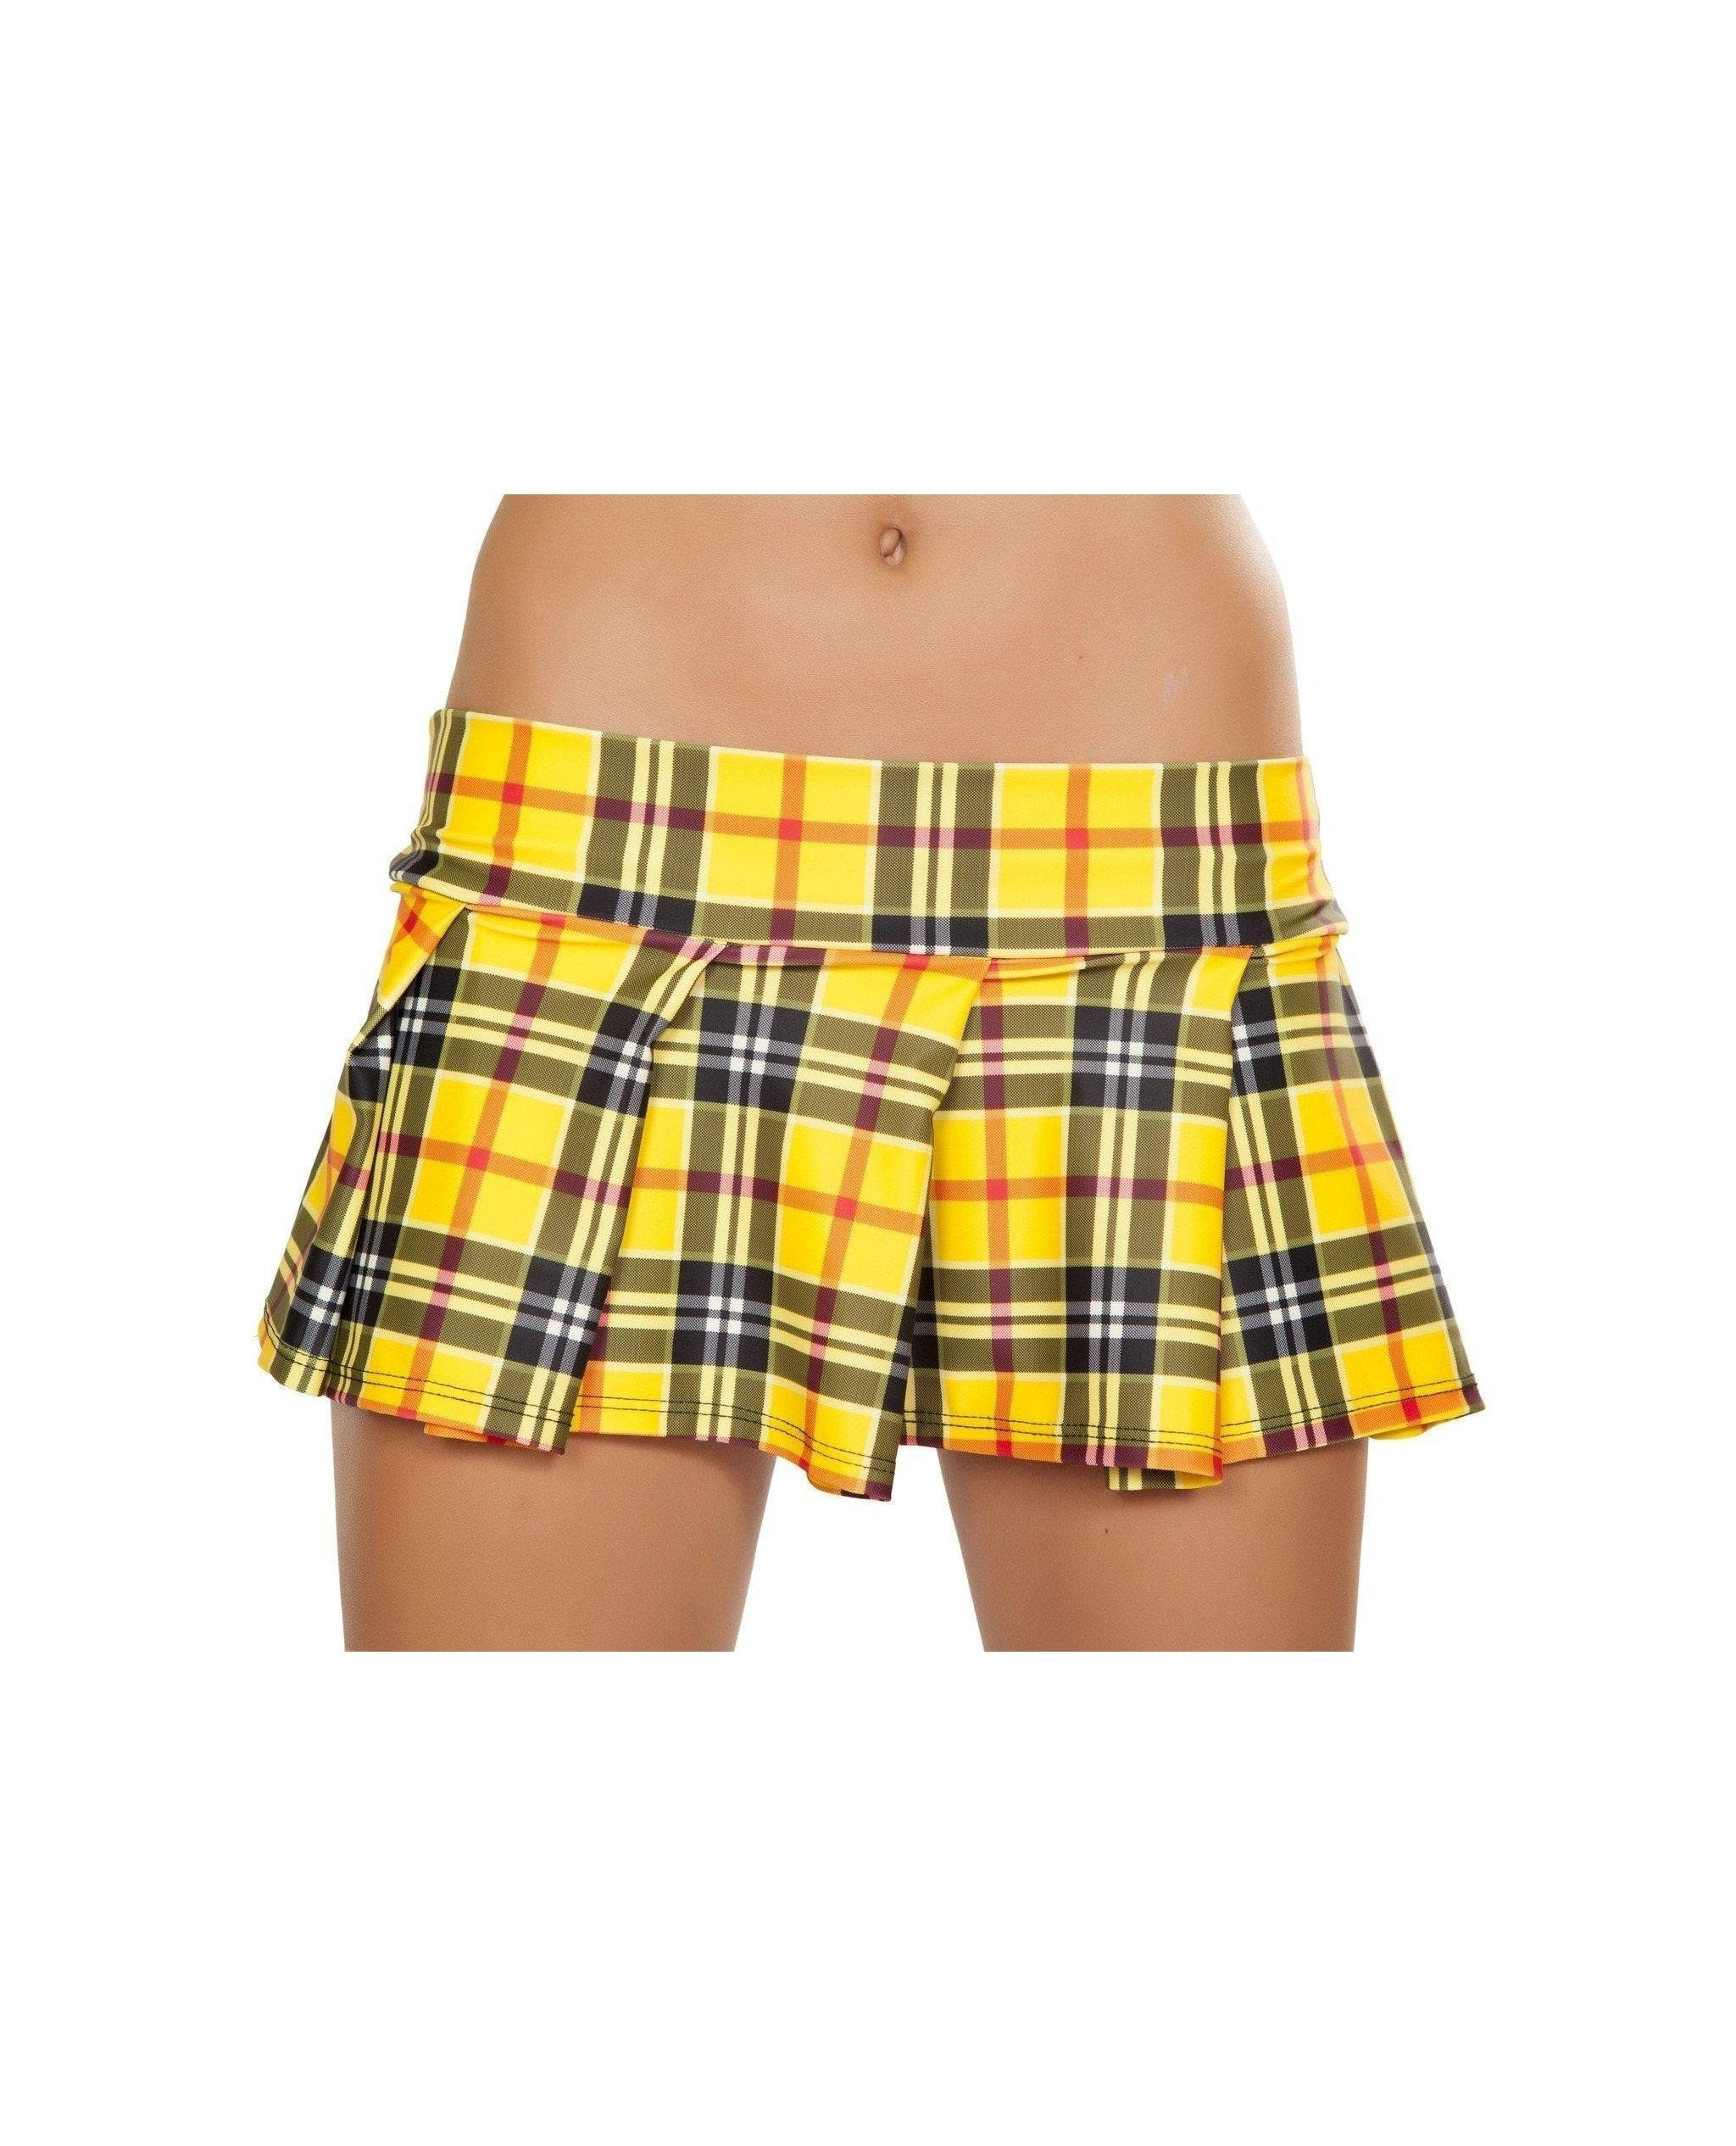 Yellow Plaid Pleated School Girl Skirt Costumes Size S/MNakees